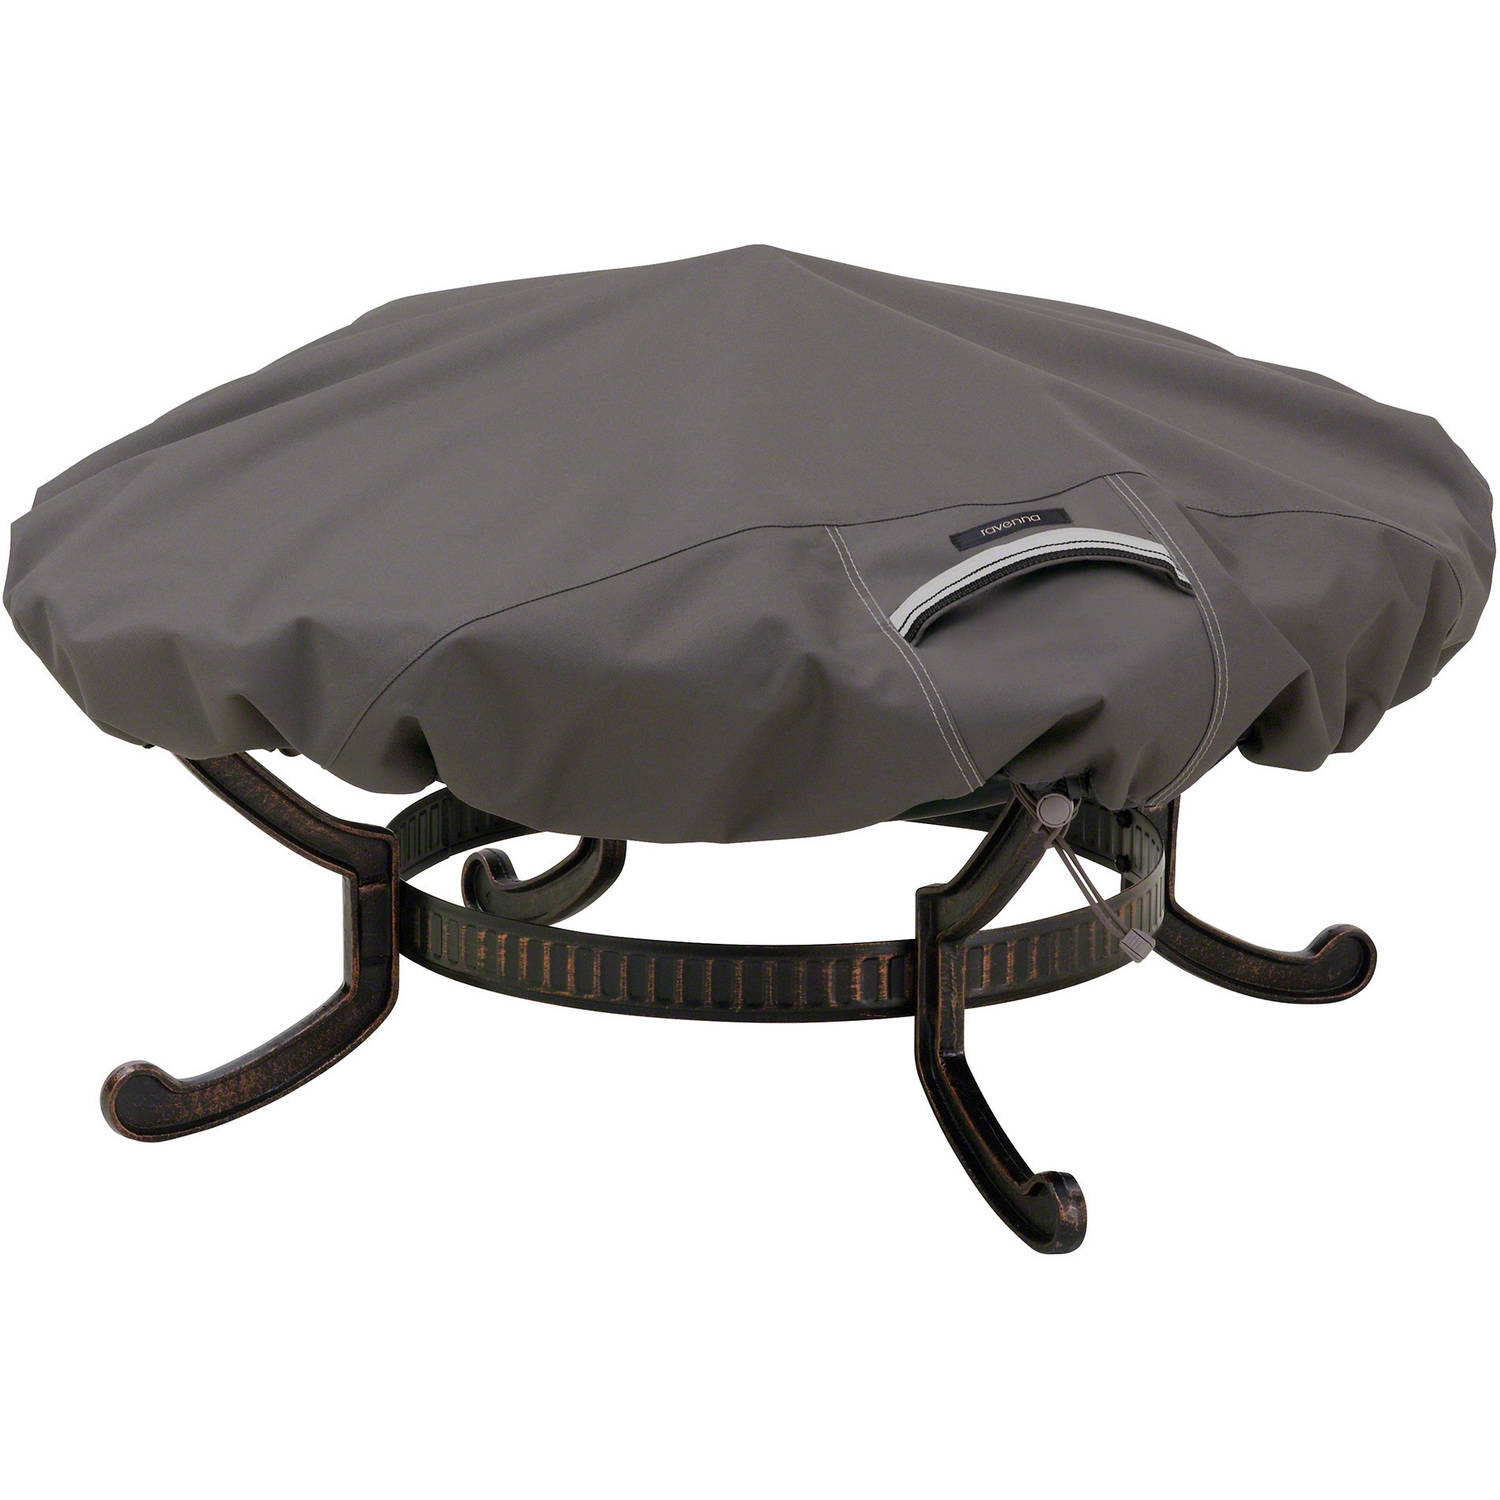 "Classic Accessories Ravenna Small Round Fire Pit Patio Storage Cover, Fits up to 44"" Diameter, Taupe"